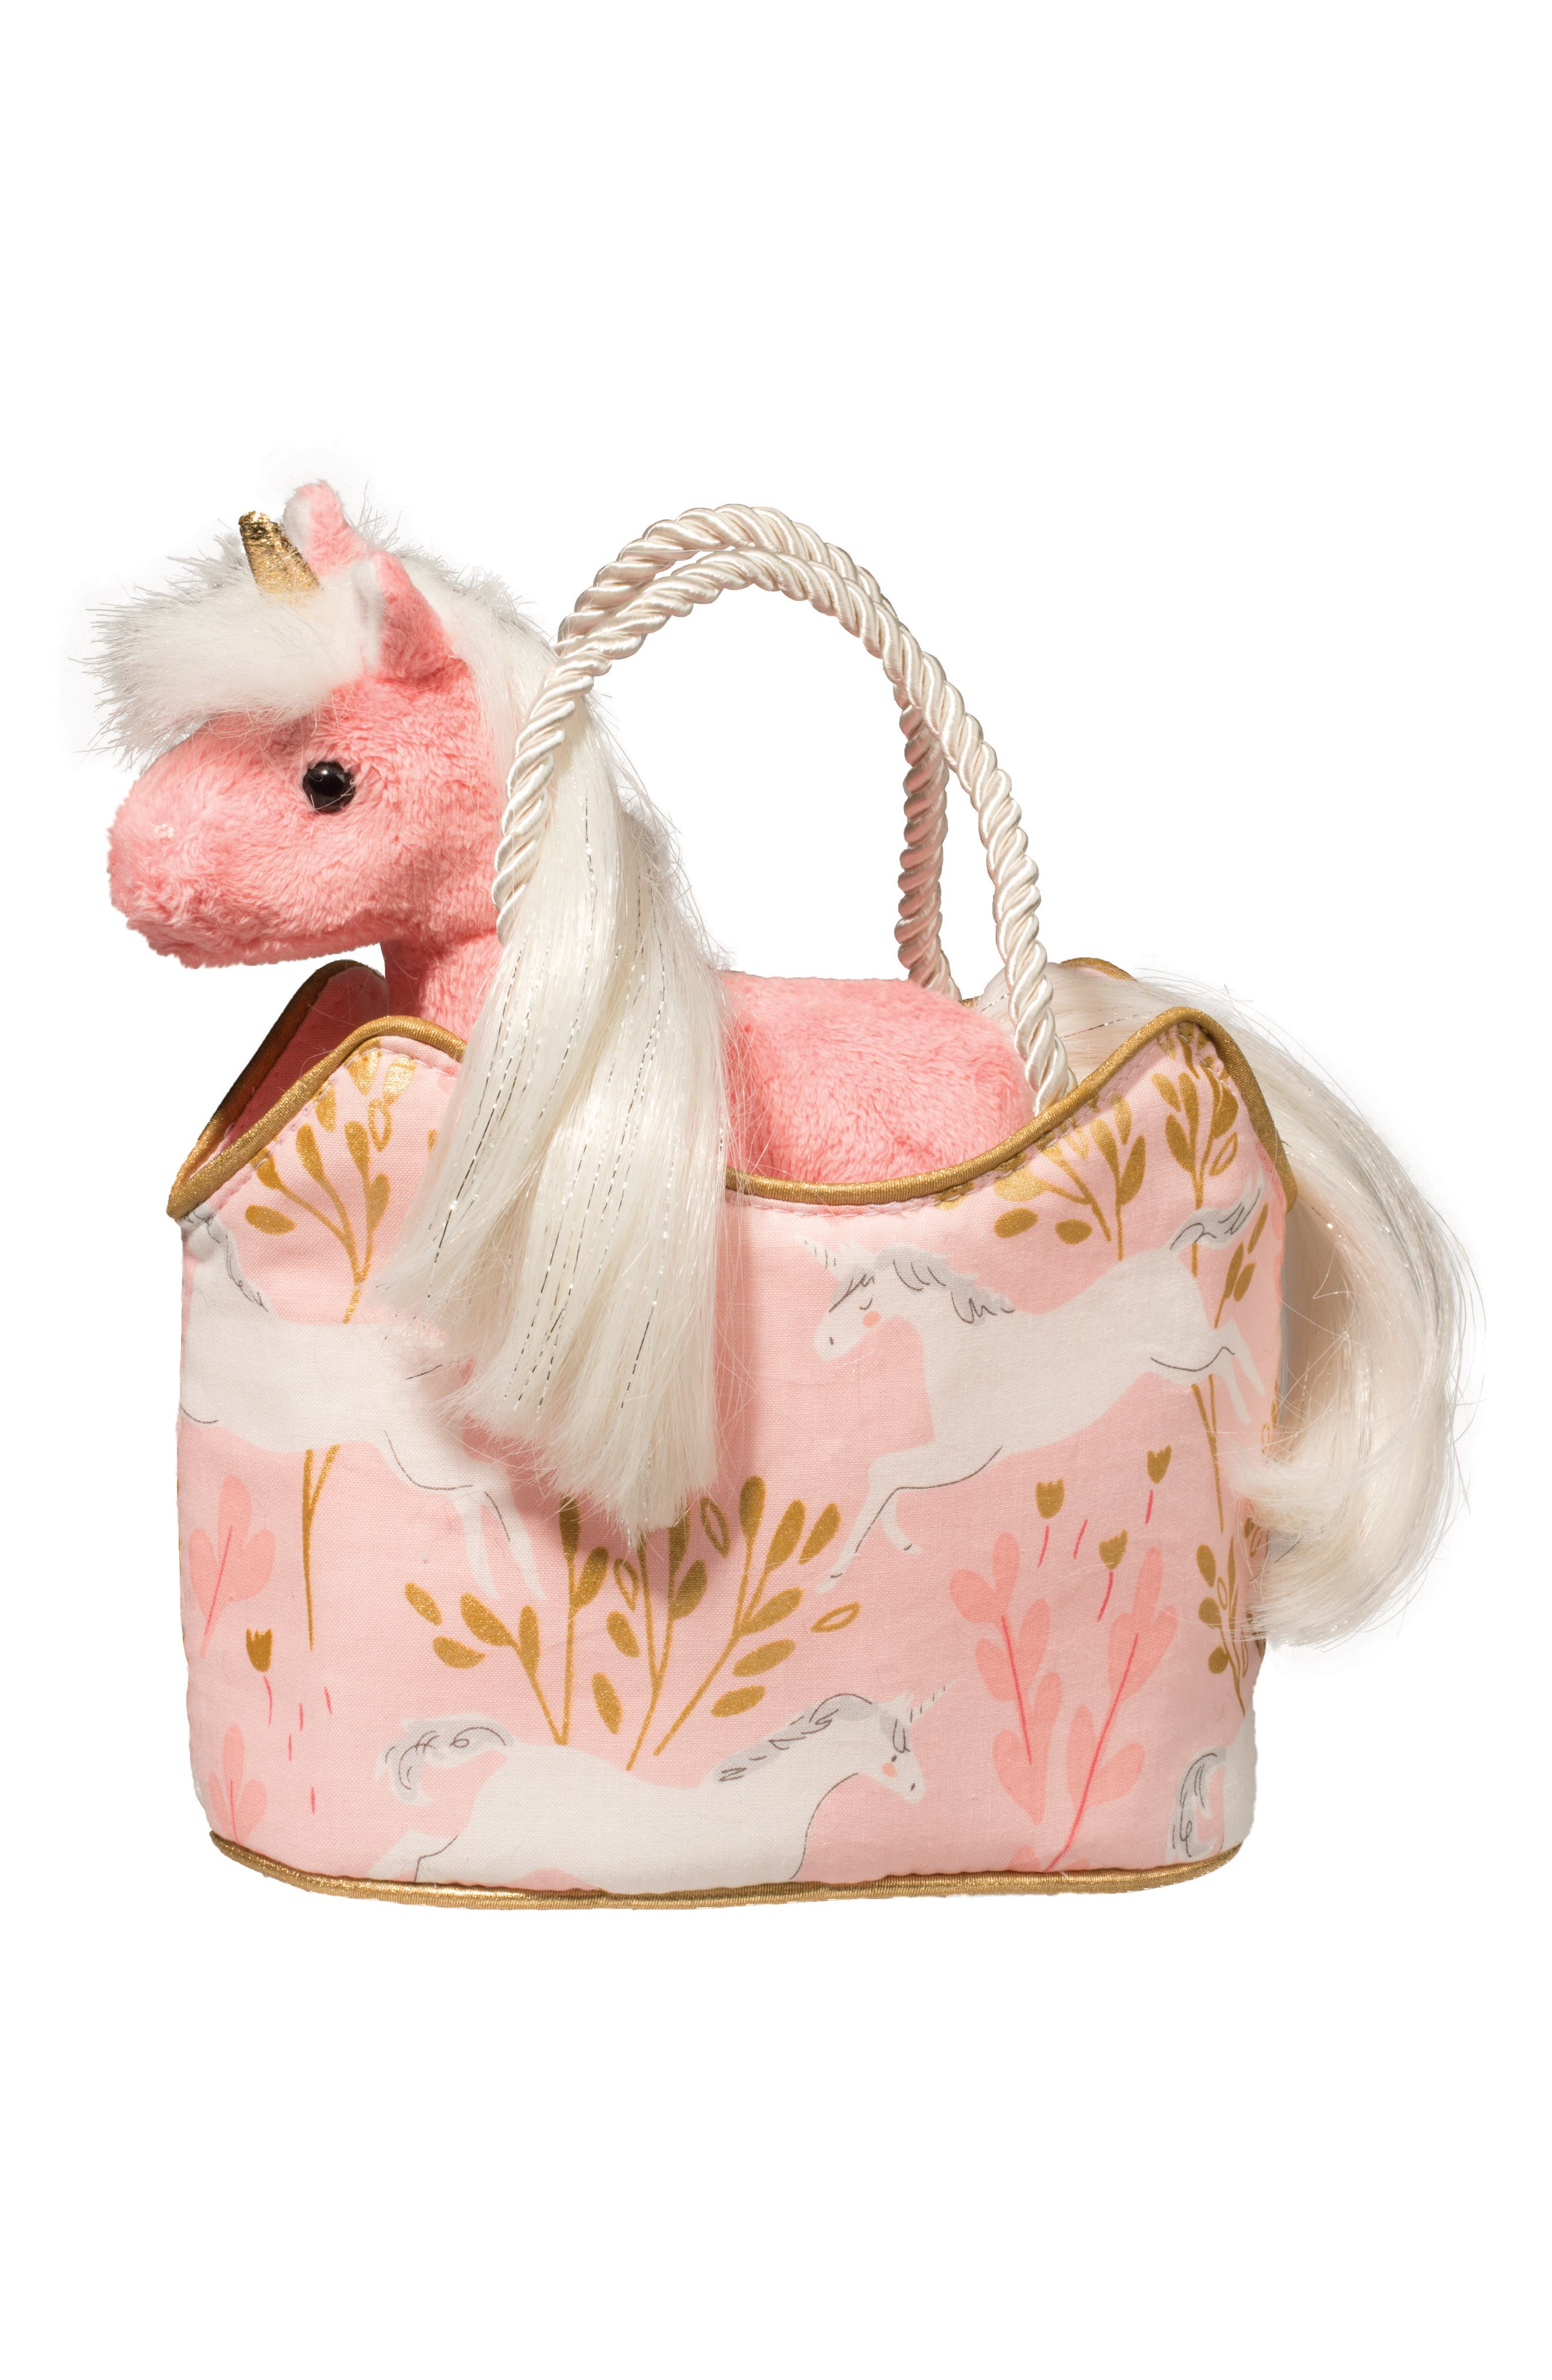 Douglas Unicorn Princess & Handbag